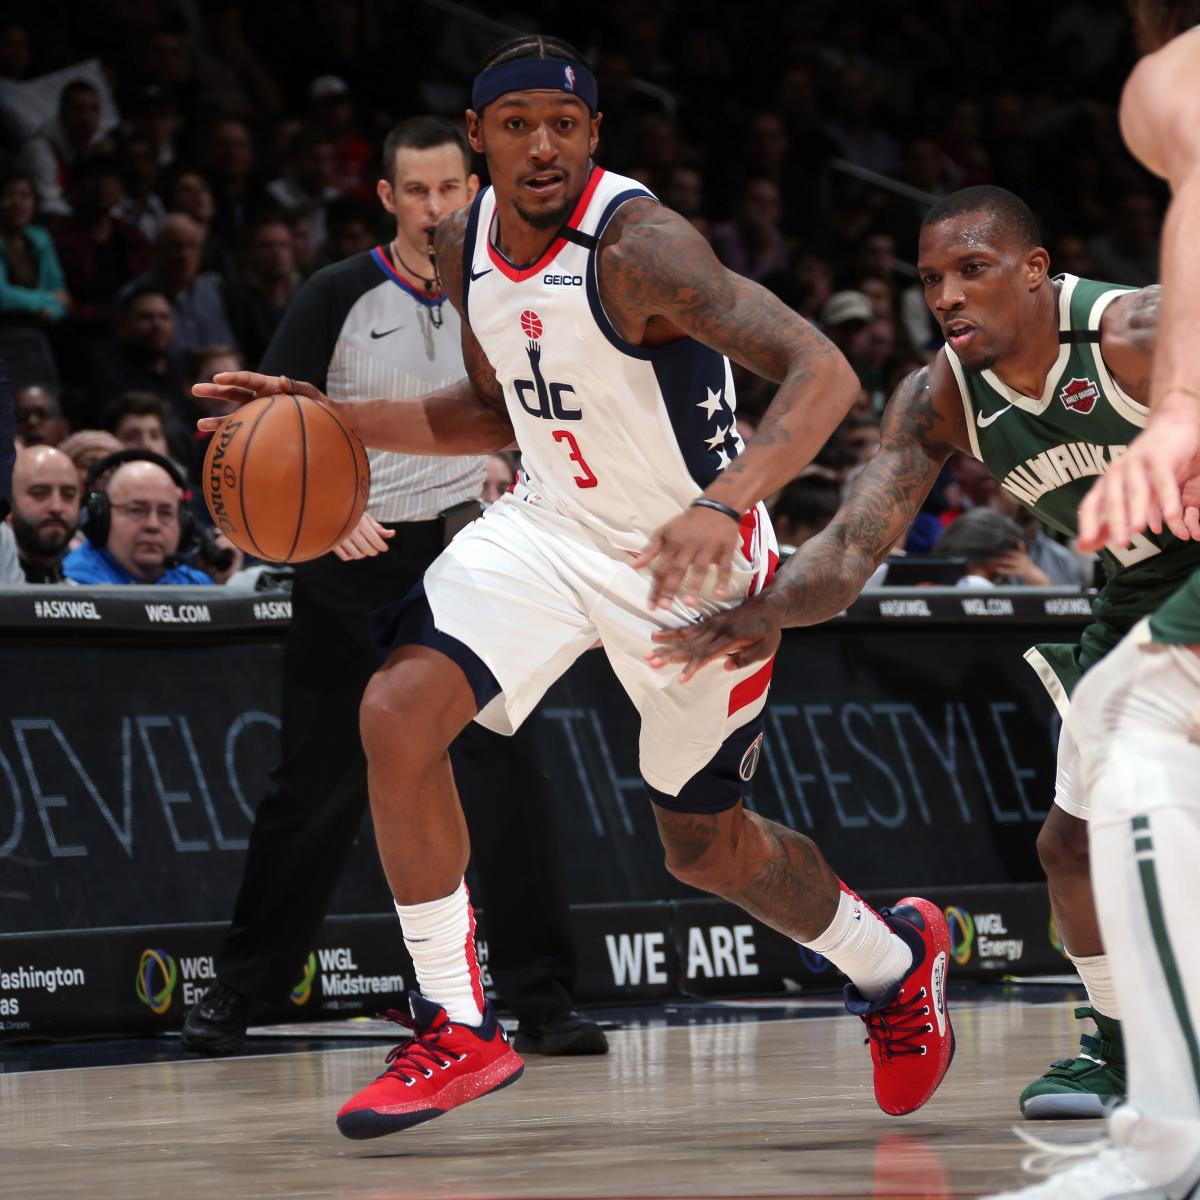 Bradley Beal Becomes 11th Player in NBA History with Back-to-Back 50-Point Games